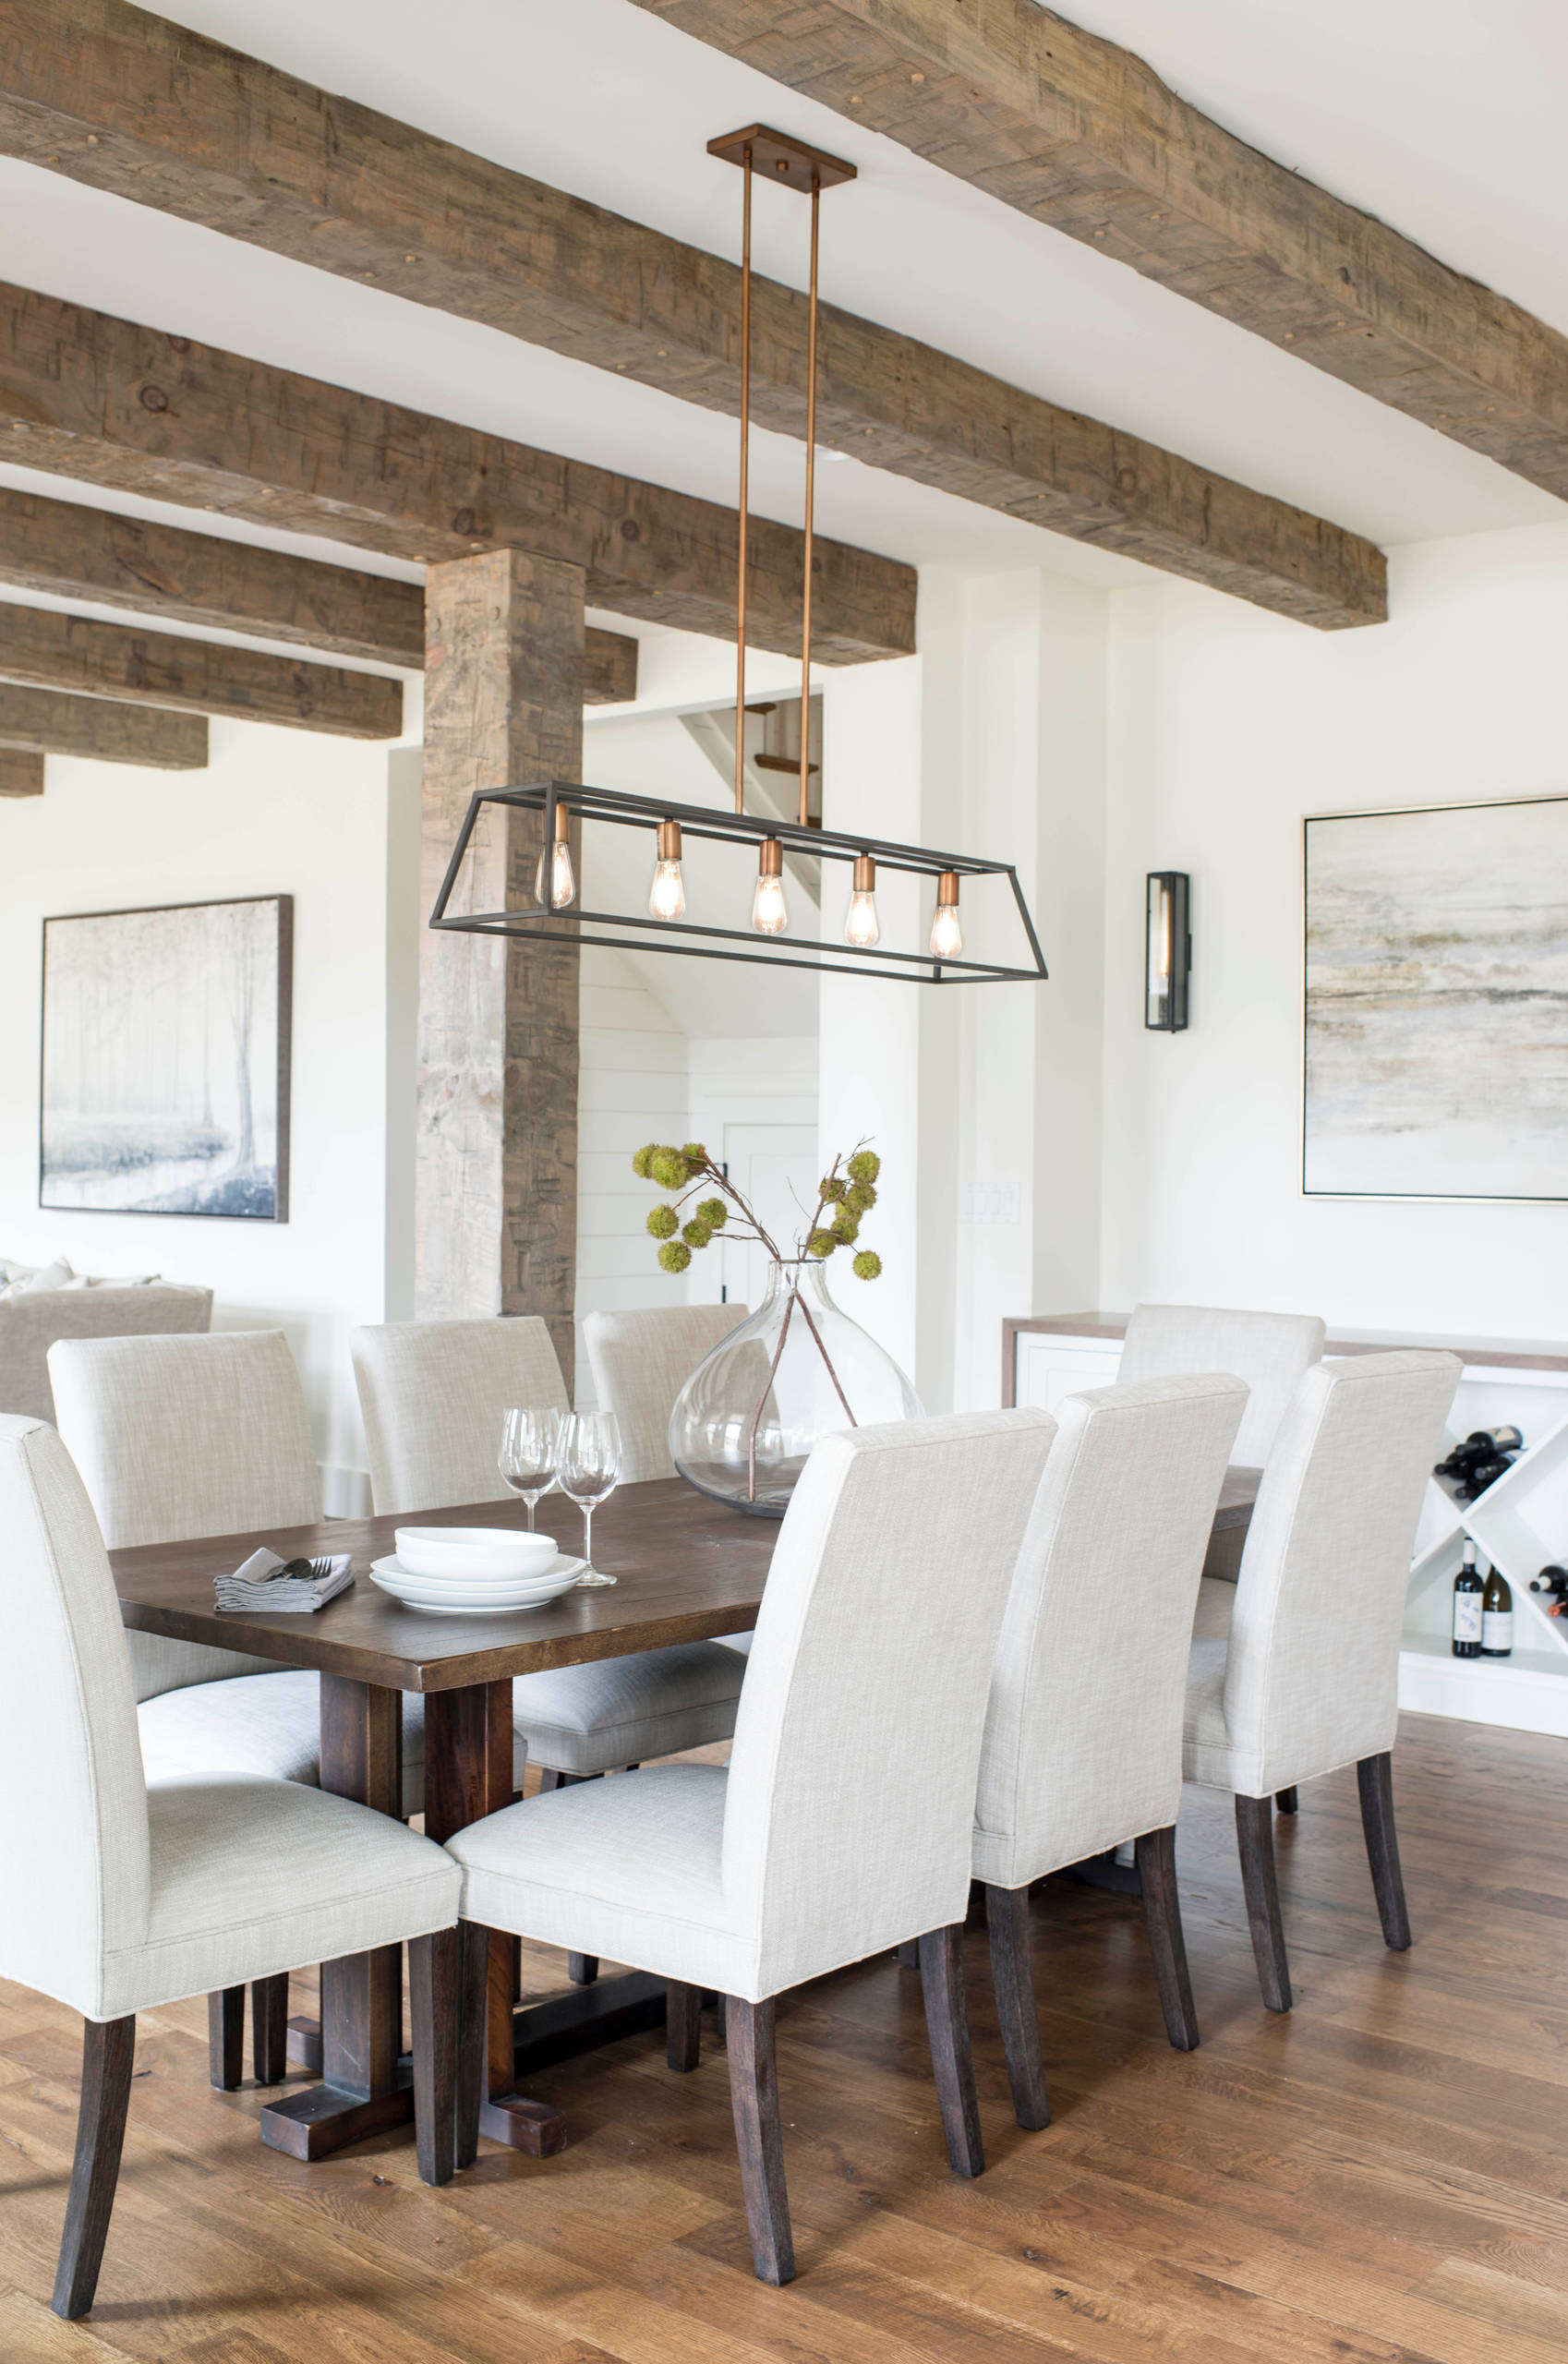 75 Beautiful Farmhouse Dining Room Pictures Ideas December 2020 Houzz